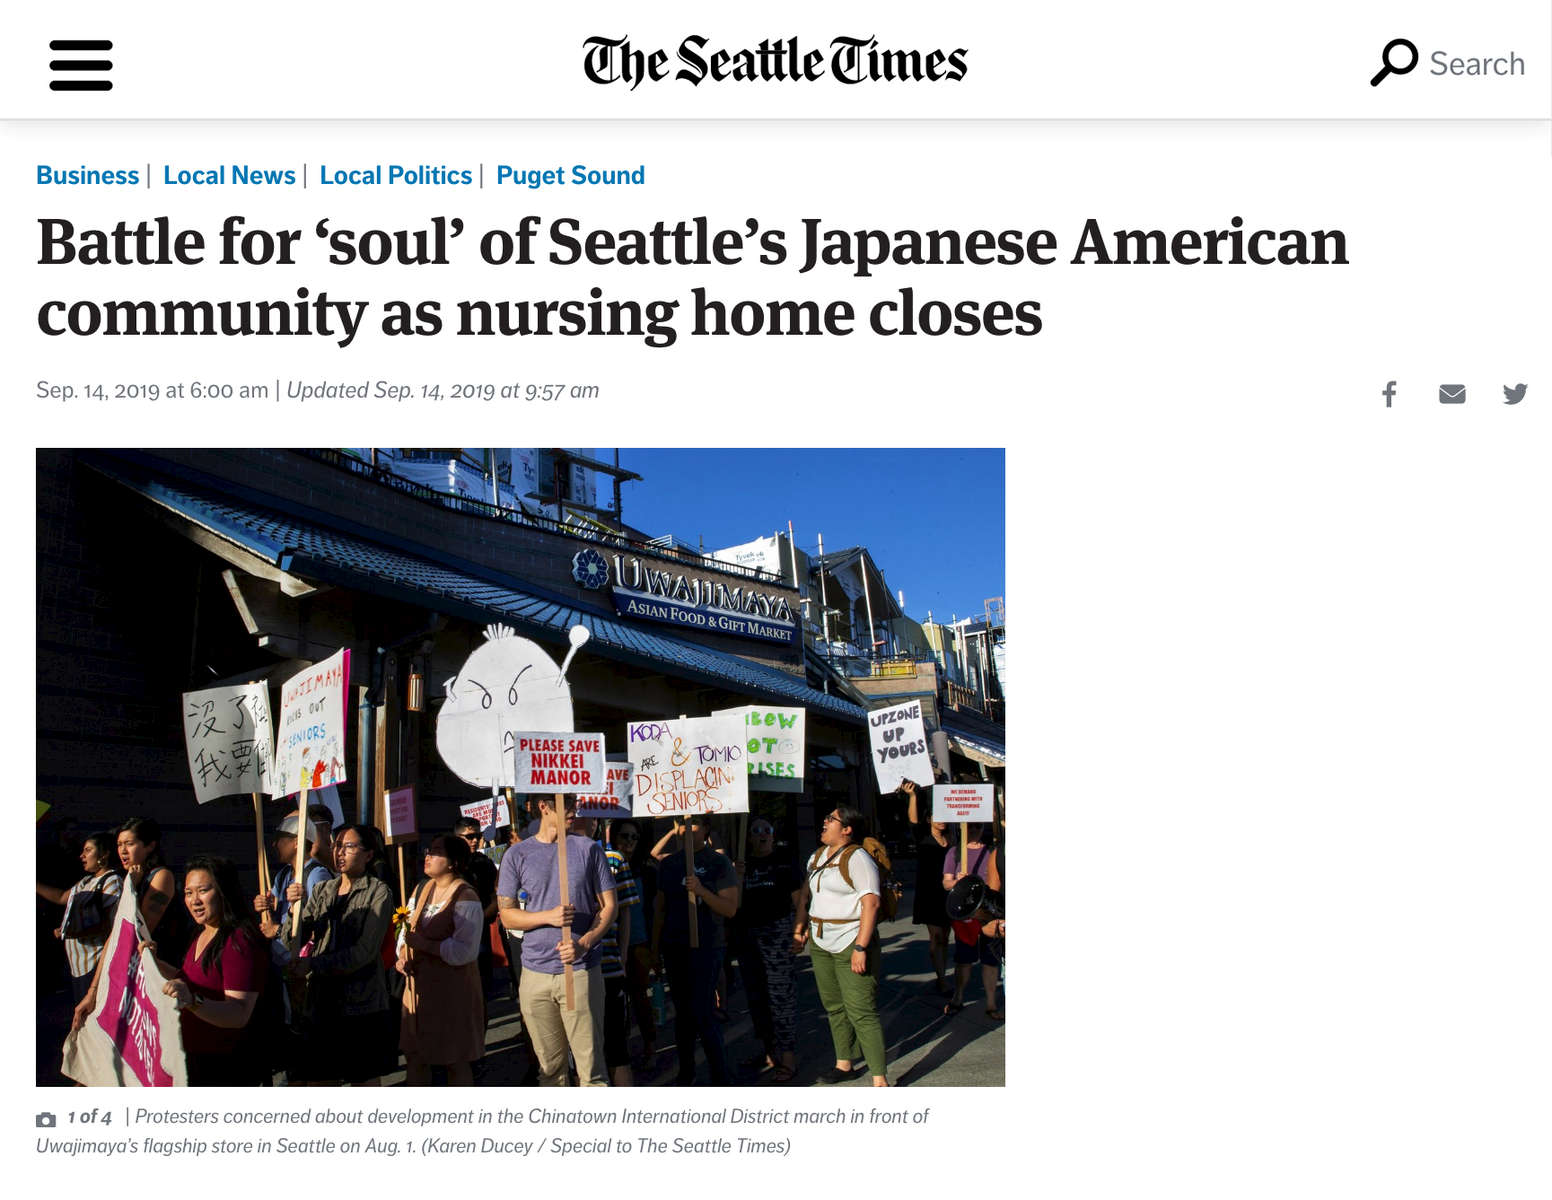 {quote}Battle for 'soul' of Seattle's Japanese American community as nursing home closes.{quote} Photos in the Seattle Times, September 14, 2019.